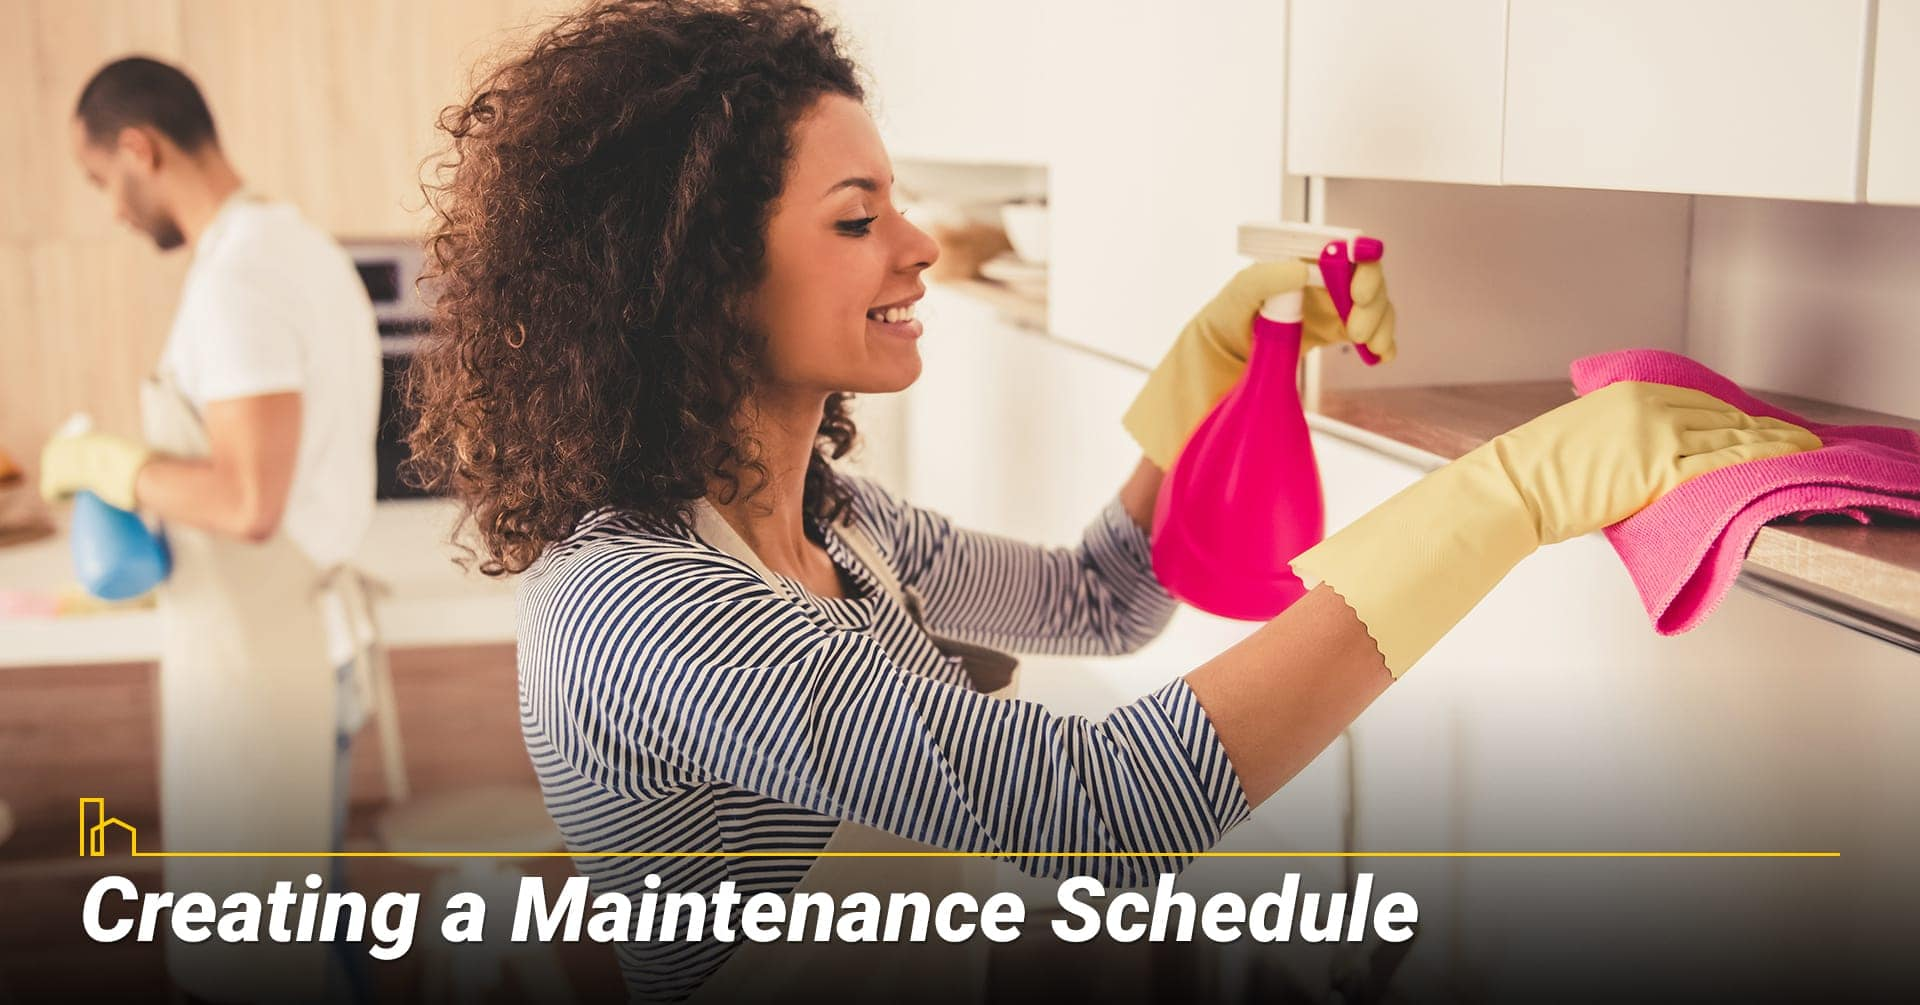 Creating a Maintenance Schedule, regularly maintain your home